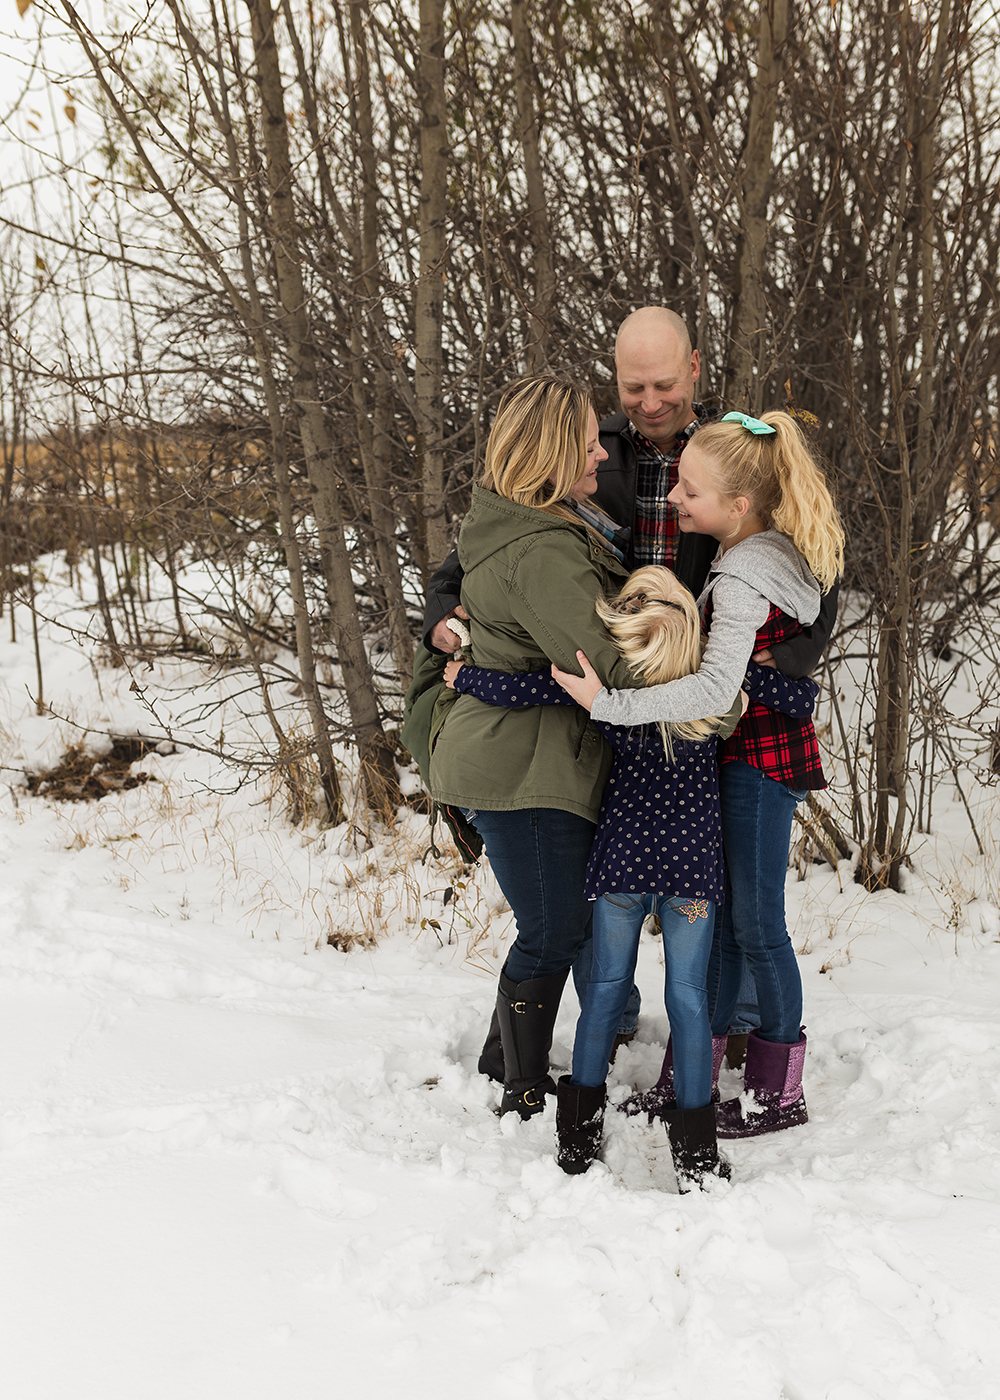 Edmonton Family Photographer_Wiles Sneak Peek 3.jpg